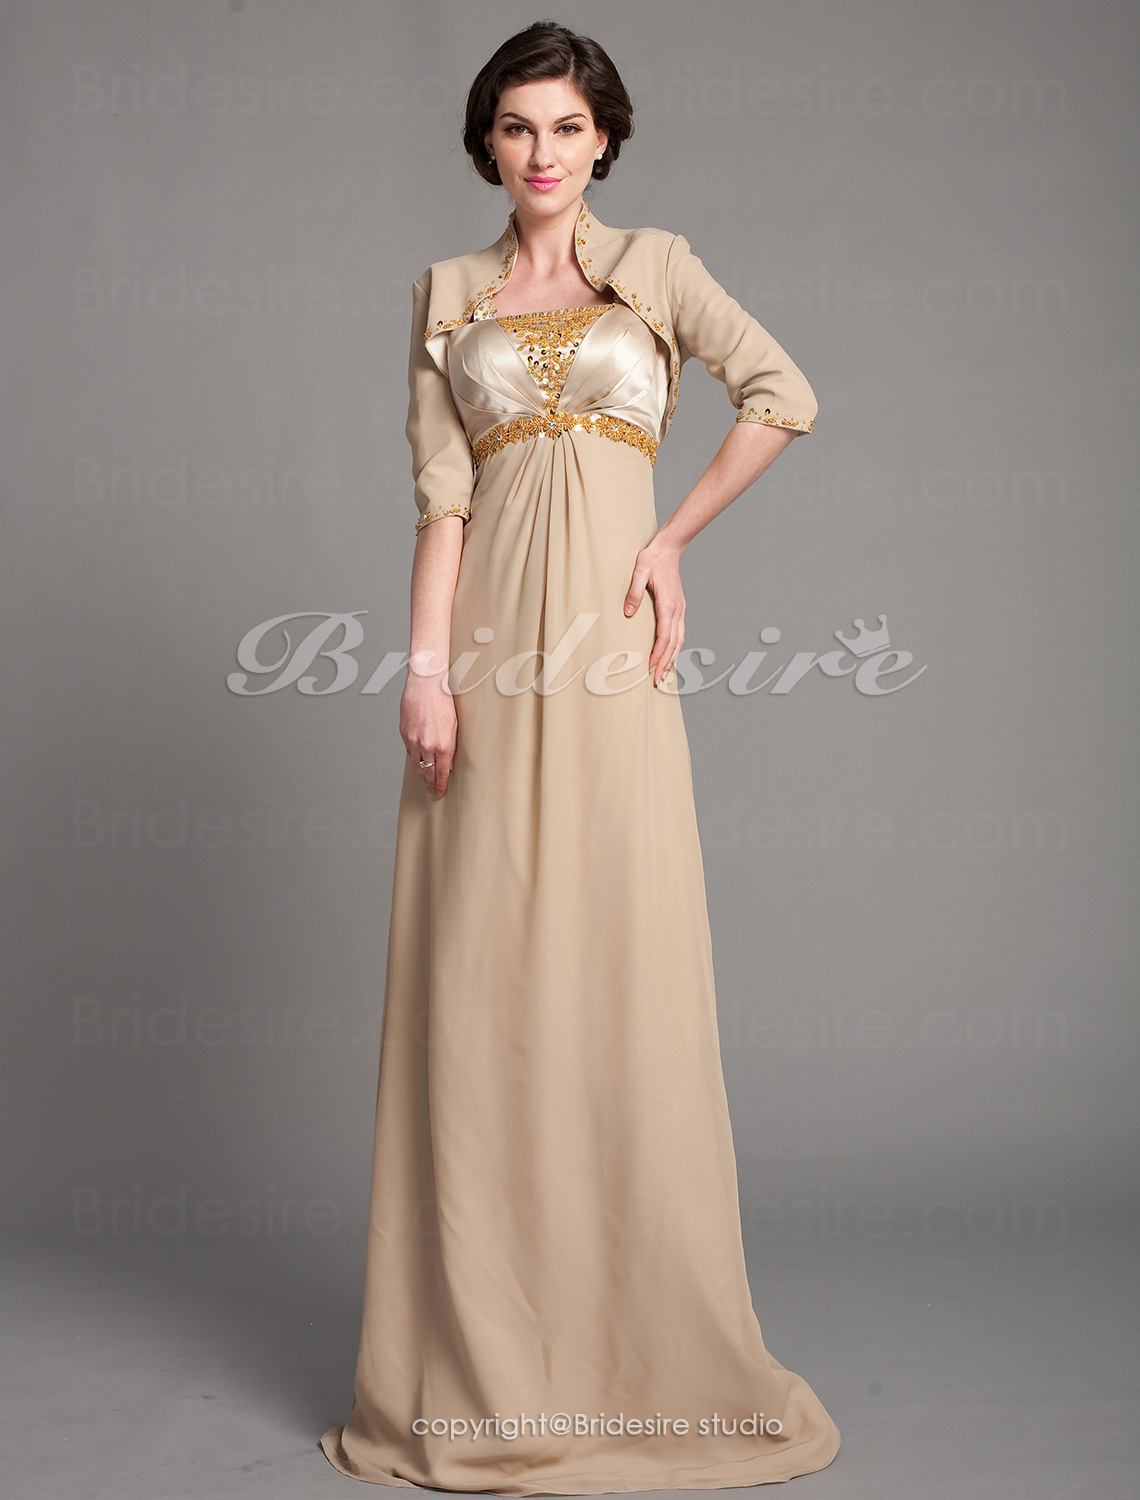 Sheath/Column Stretch Satin And Chiffon Floor-length Mother Of The Bride Dress With A Wrap